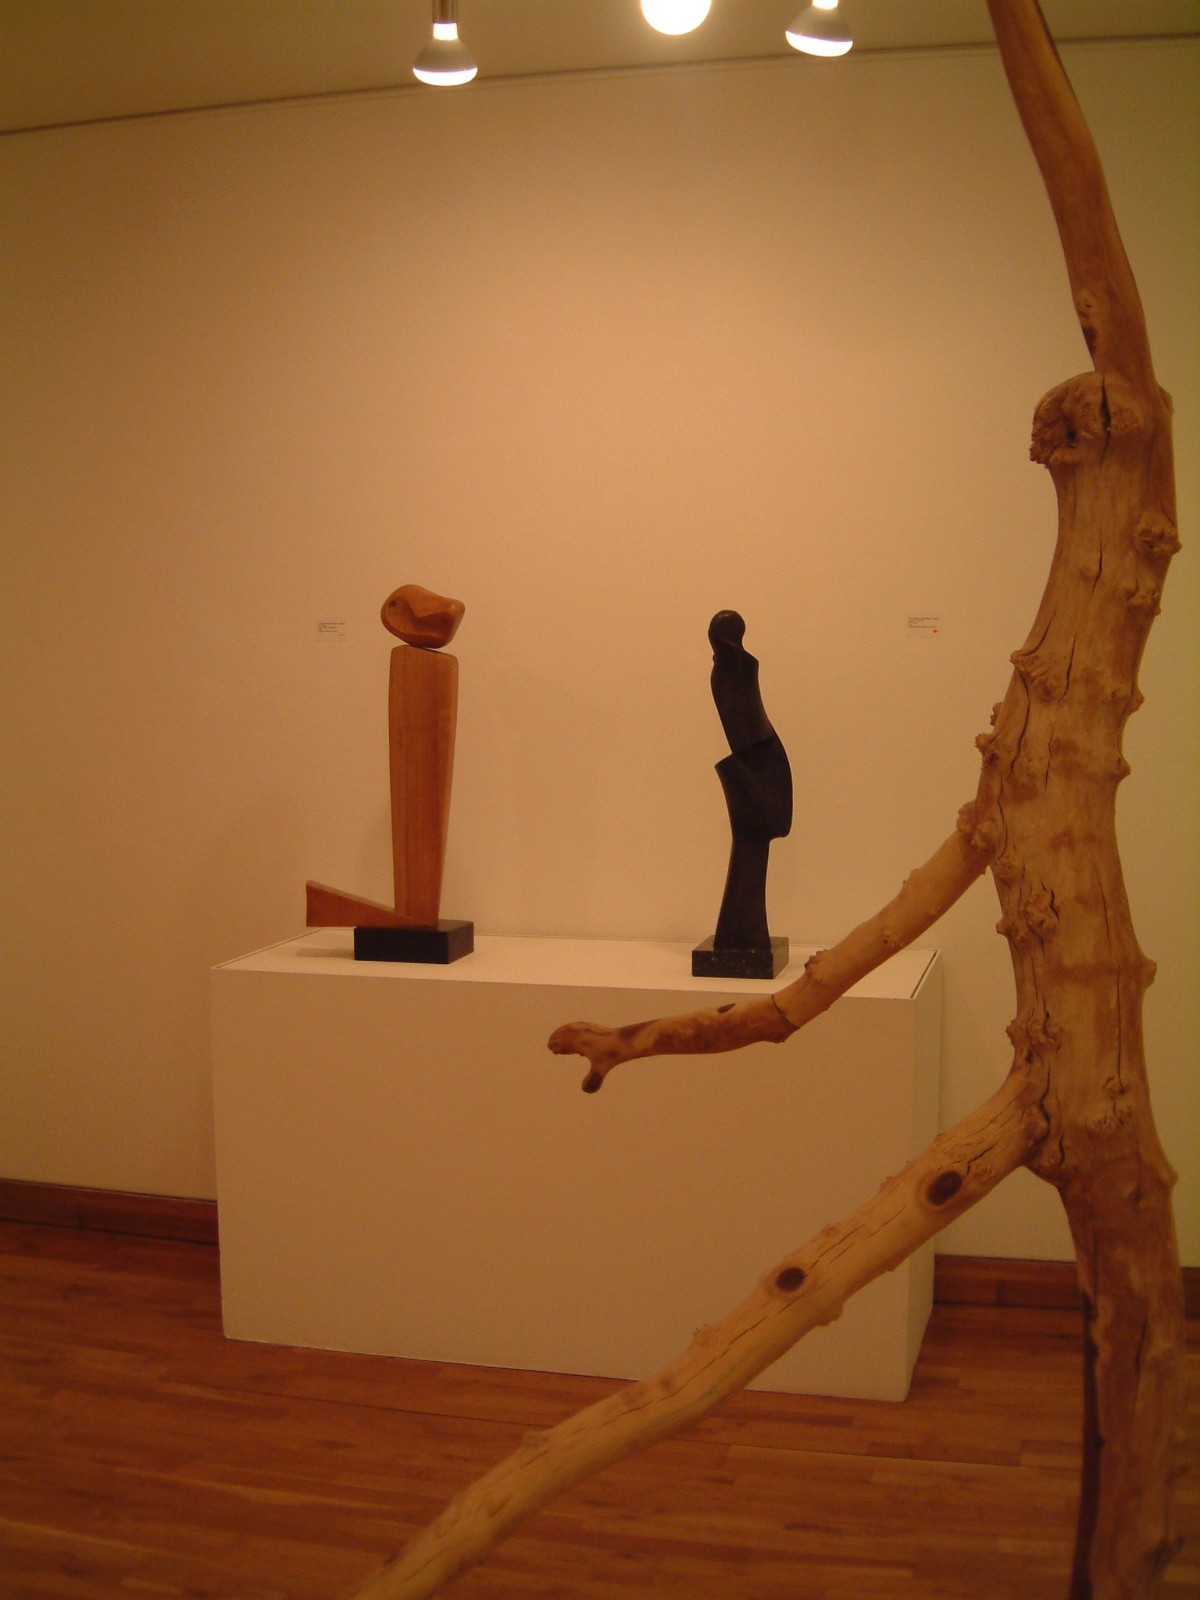 "<span class=""link fancybox-details-link""><a href=""/exhibitions/113/works/image_standalone479/"">View Detail Page</a></span><p>F. E. MCWILLIAM 